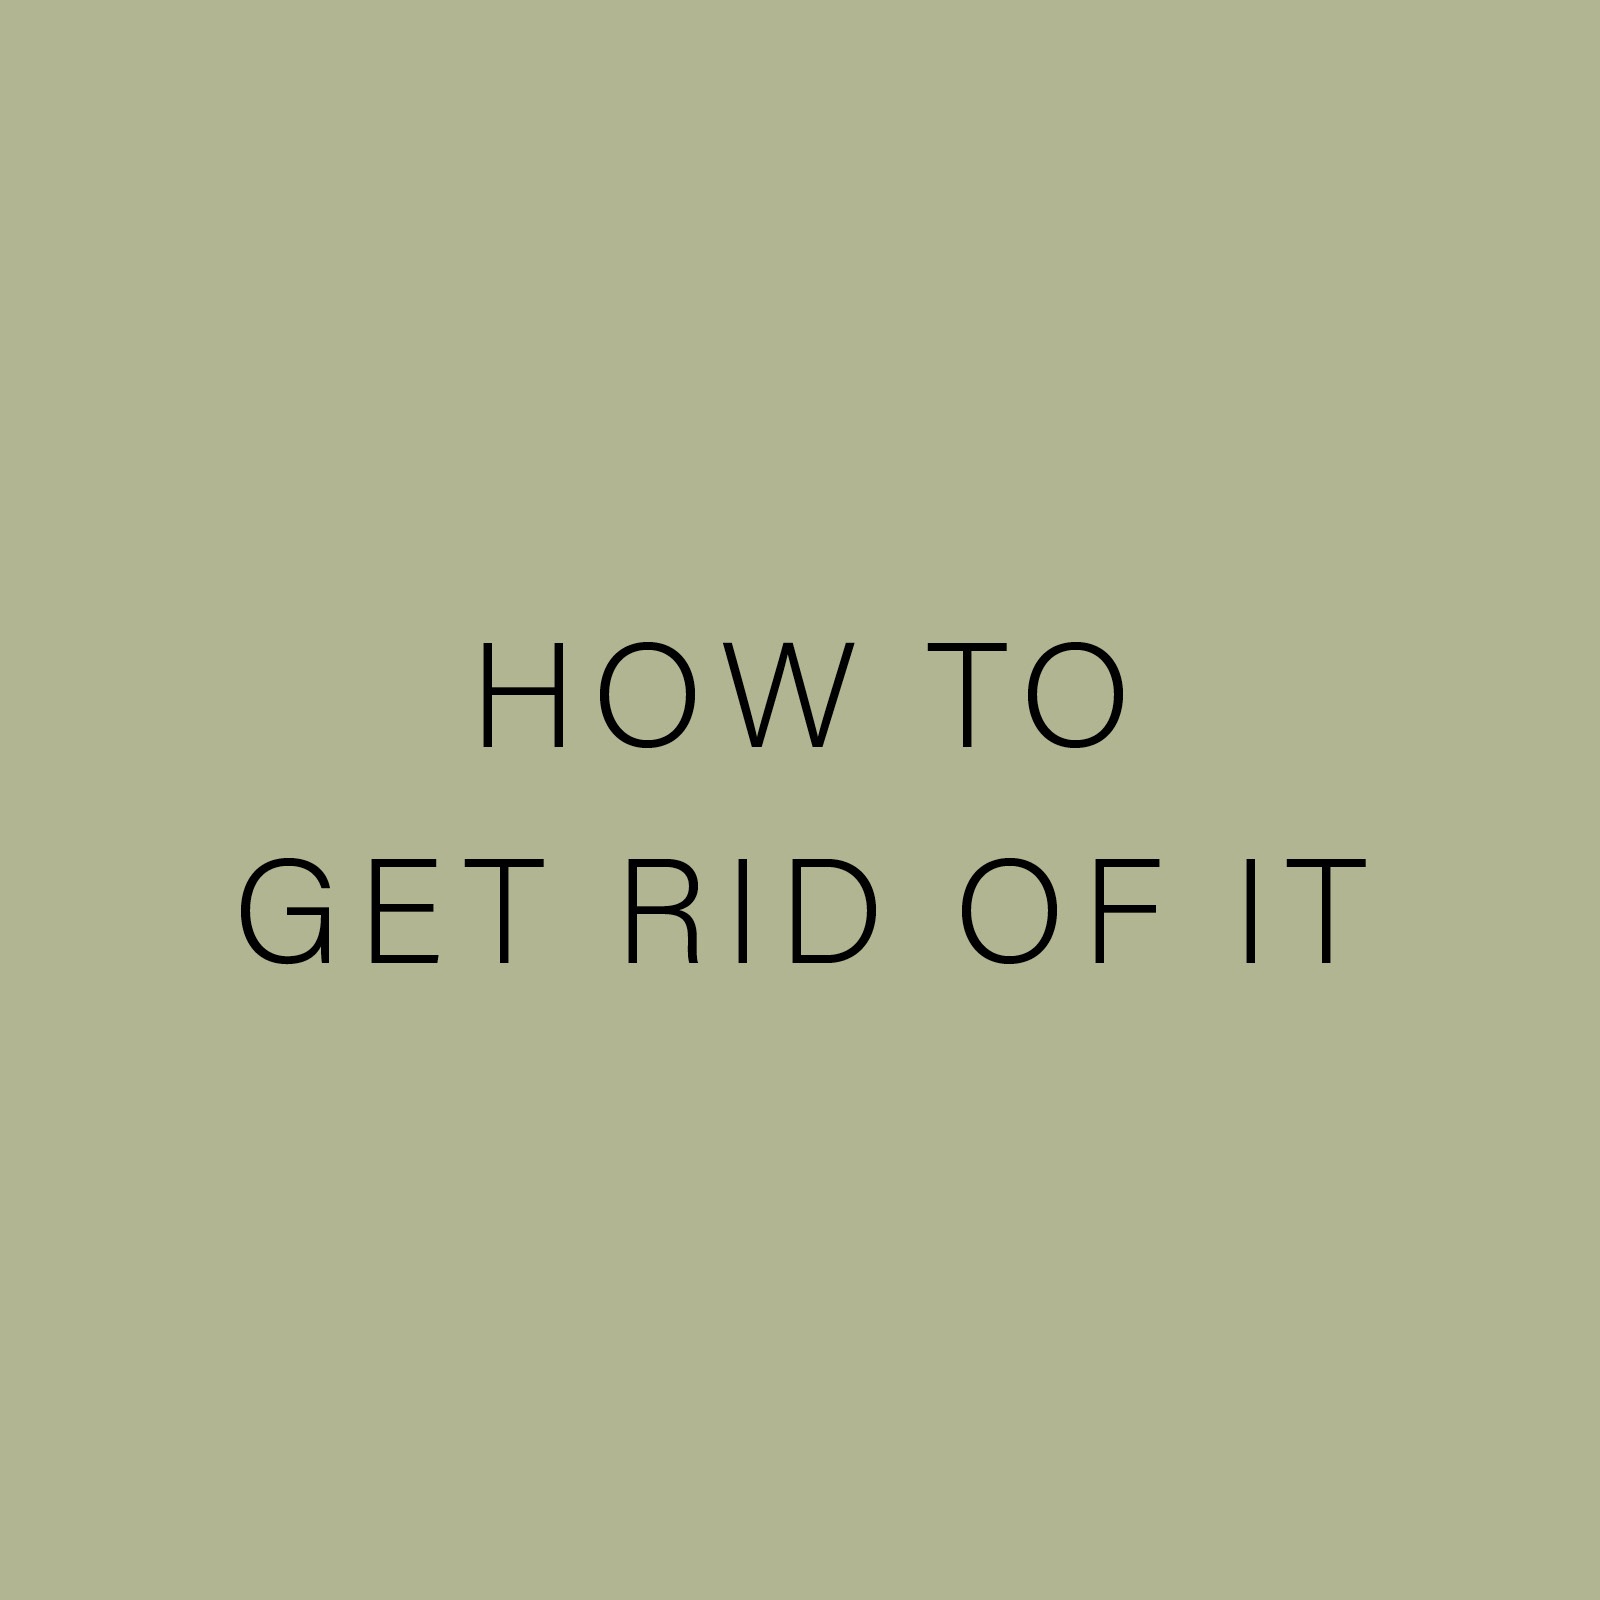 HOW TO GET RID.jpg